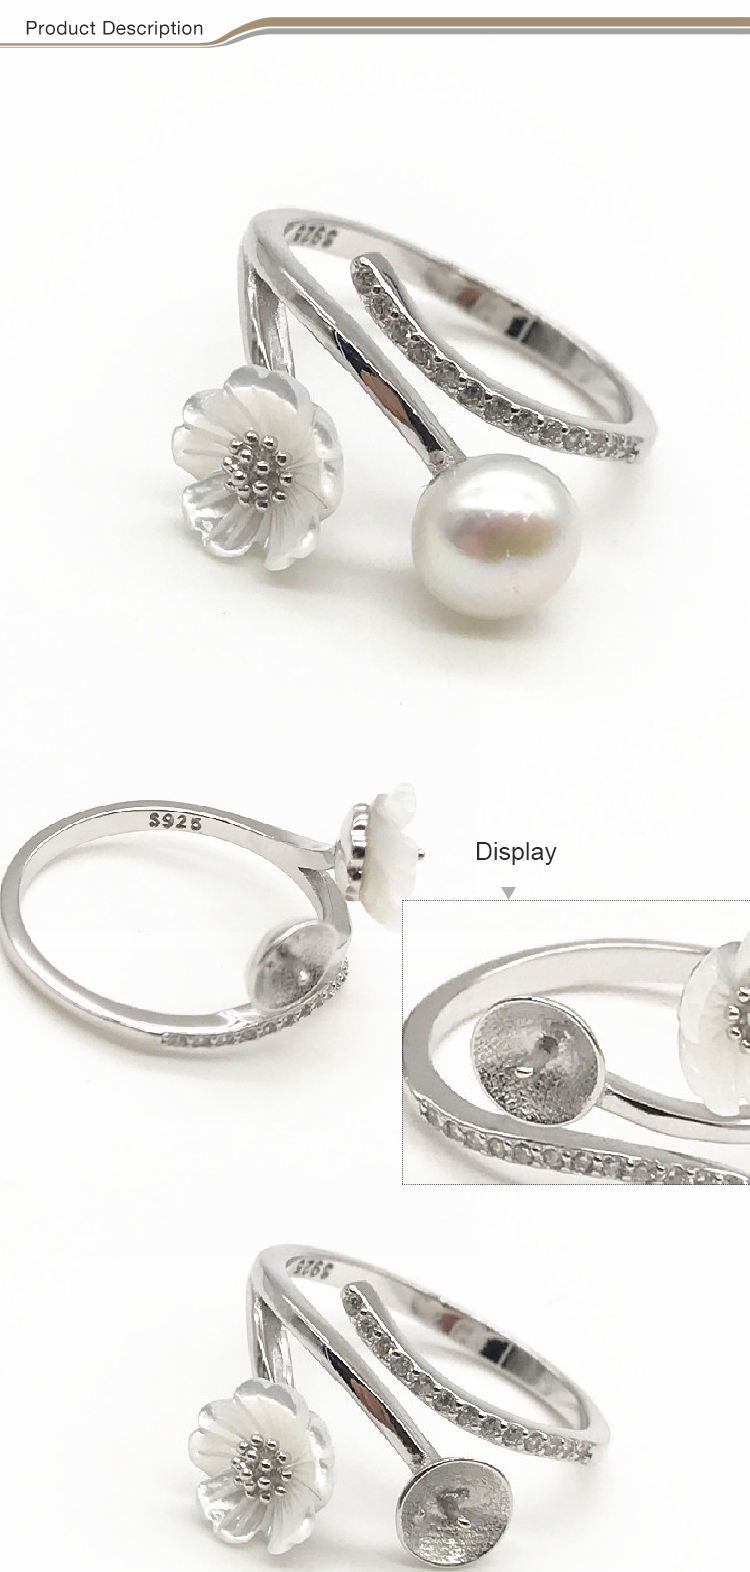 New design double beads glazed 925 sterling silver finger ring with pearl